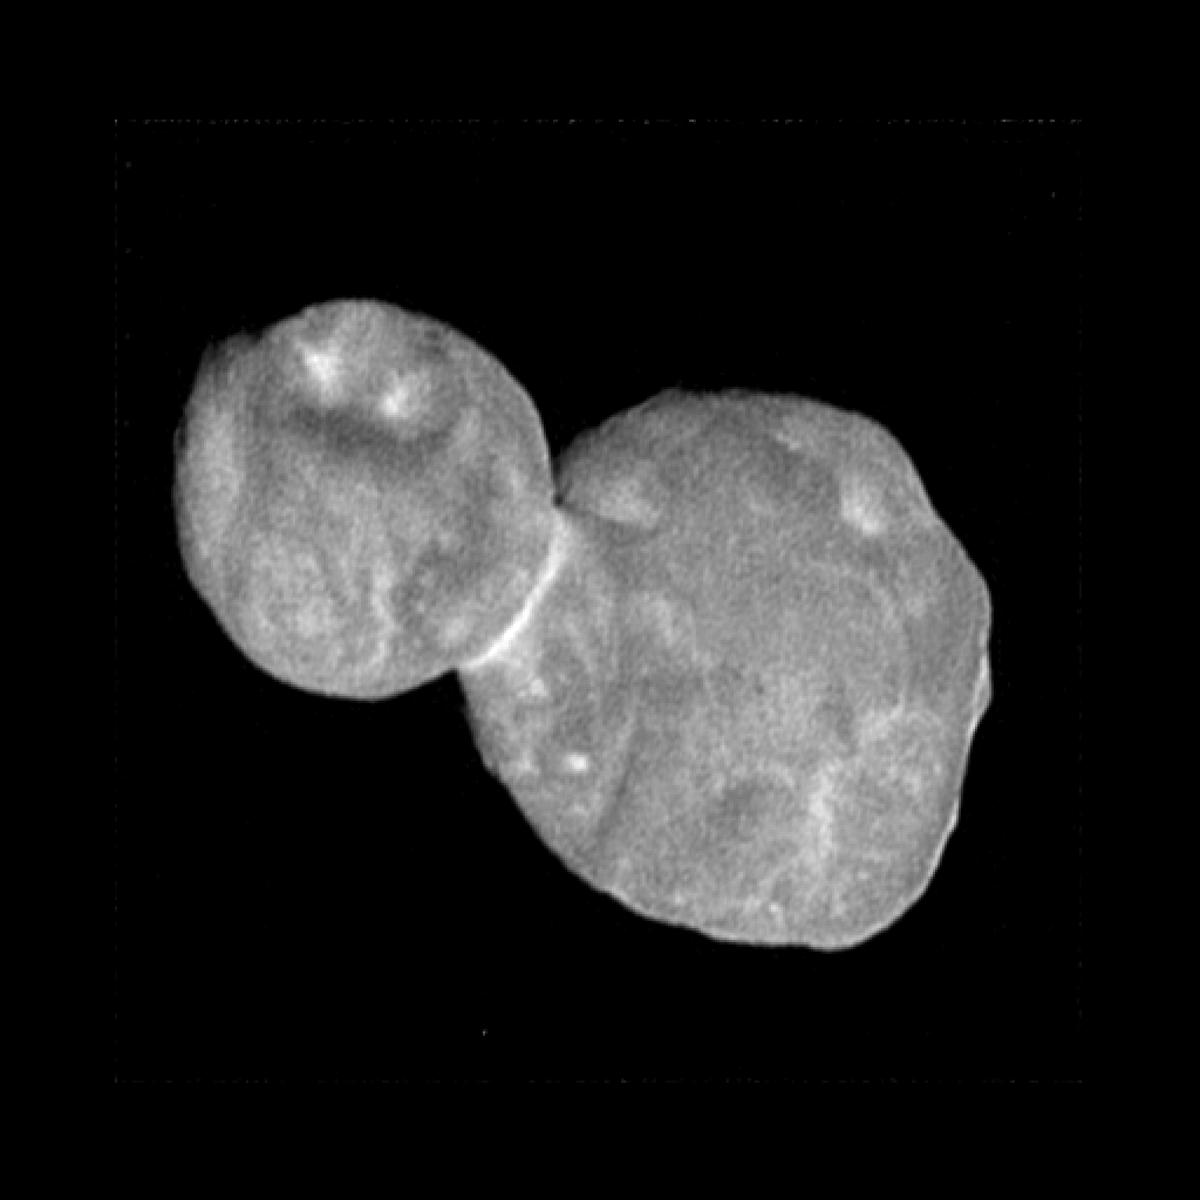 This image of Ultima Thule was snapped about 19 minutes before New Horizons' closest approach, showing a spatial resolutionof 273 ft (83 m) per pixel